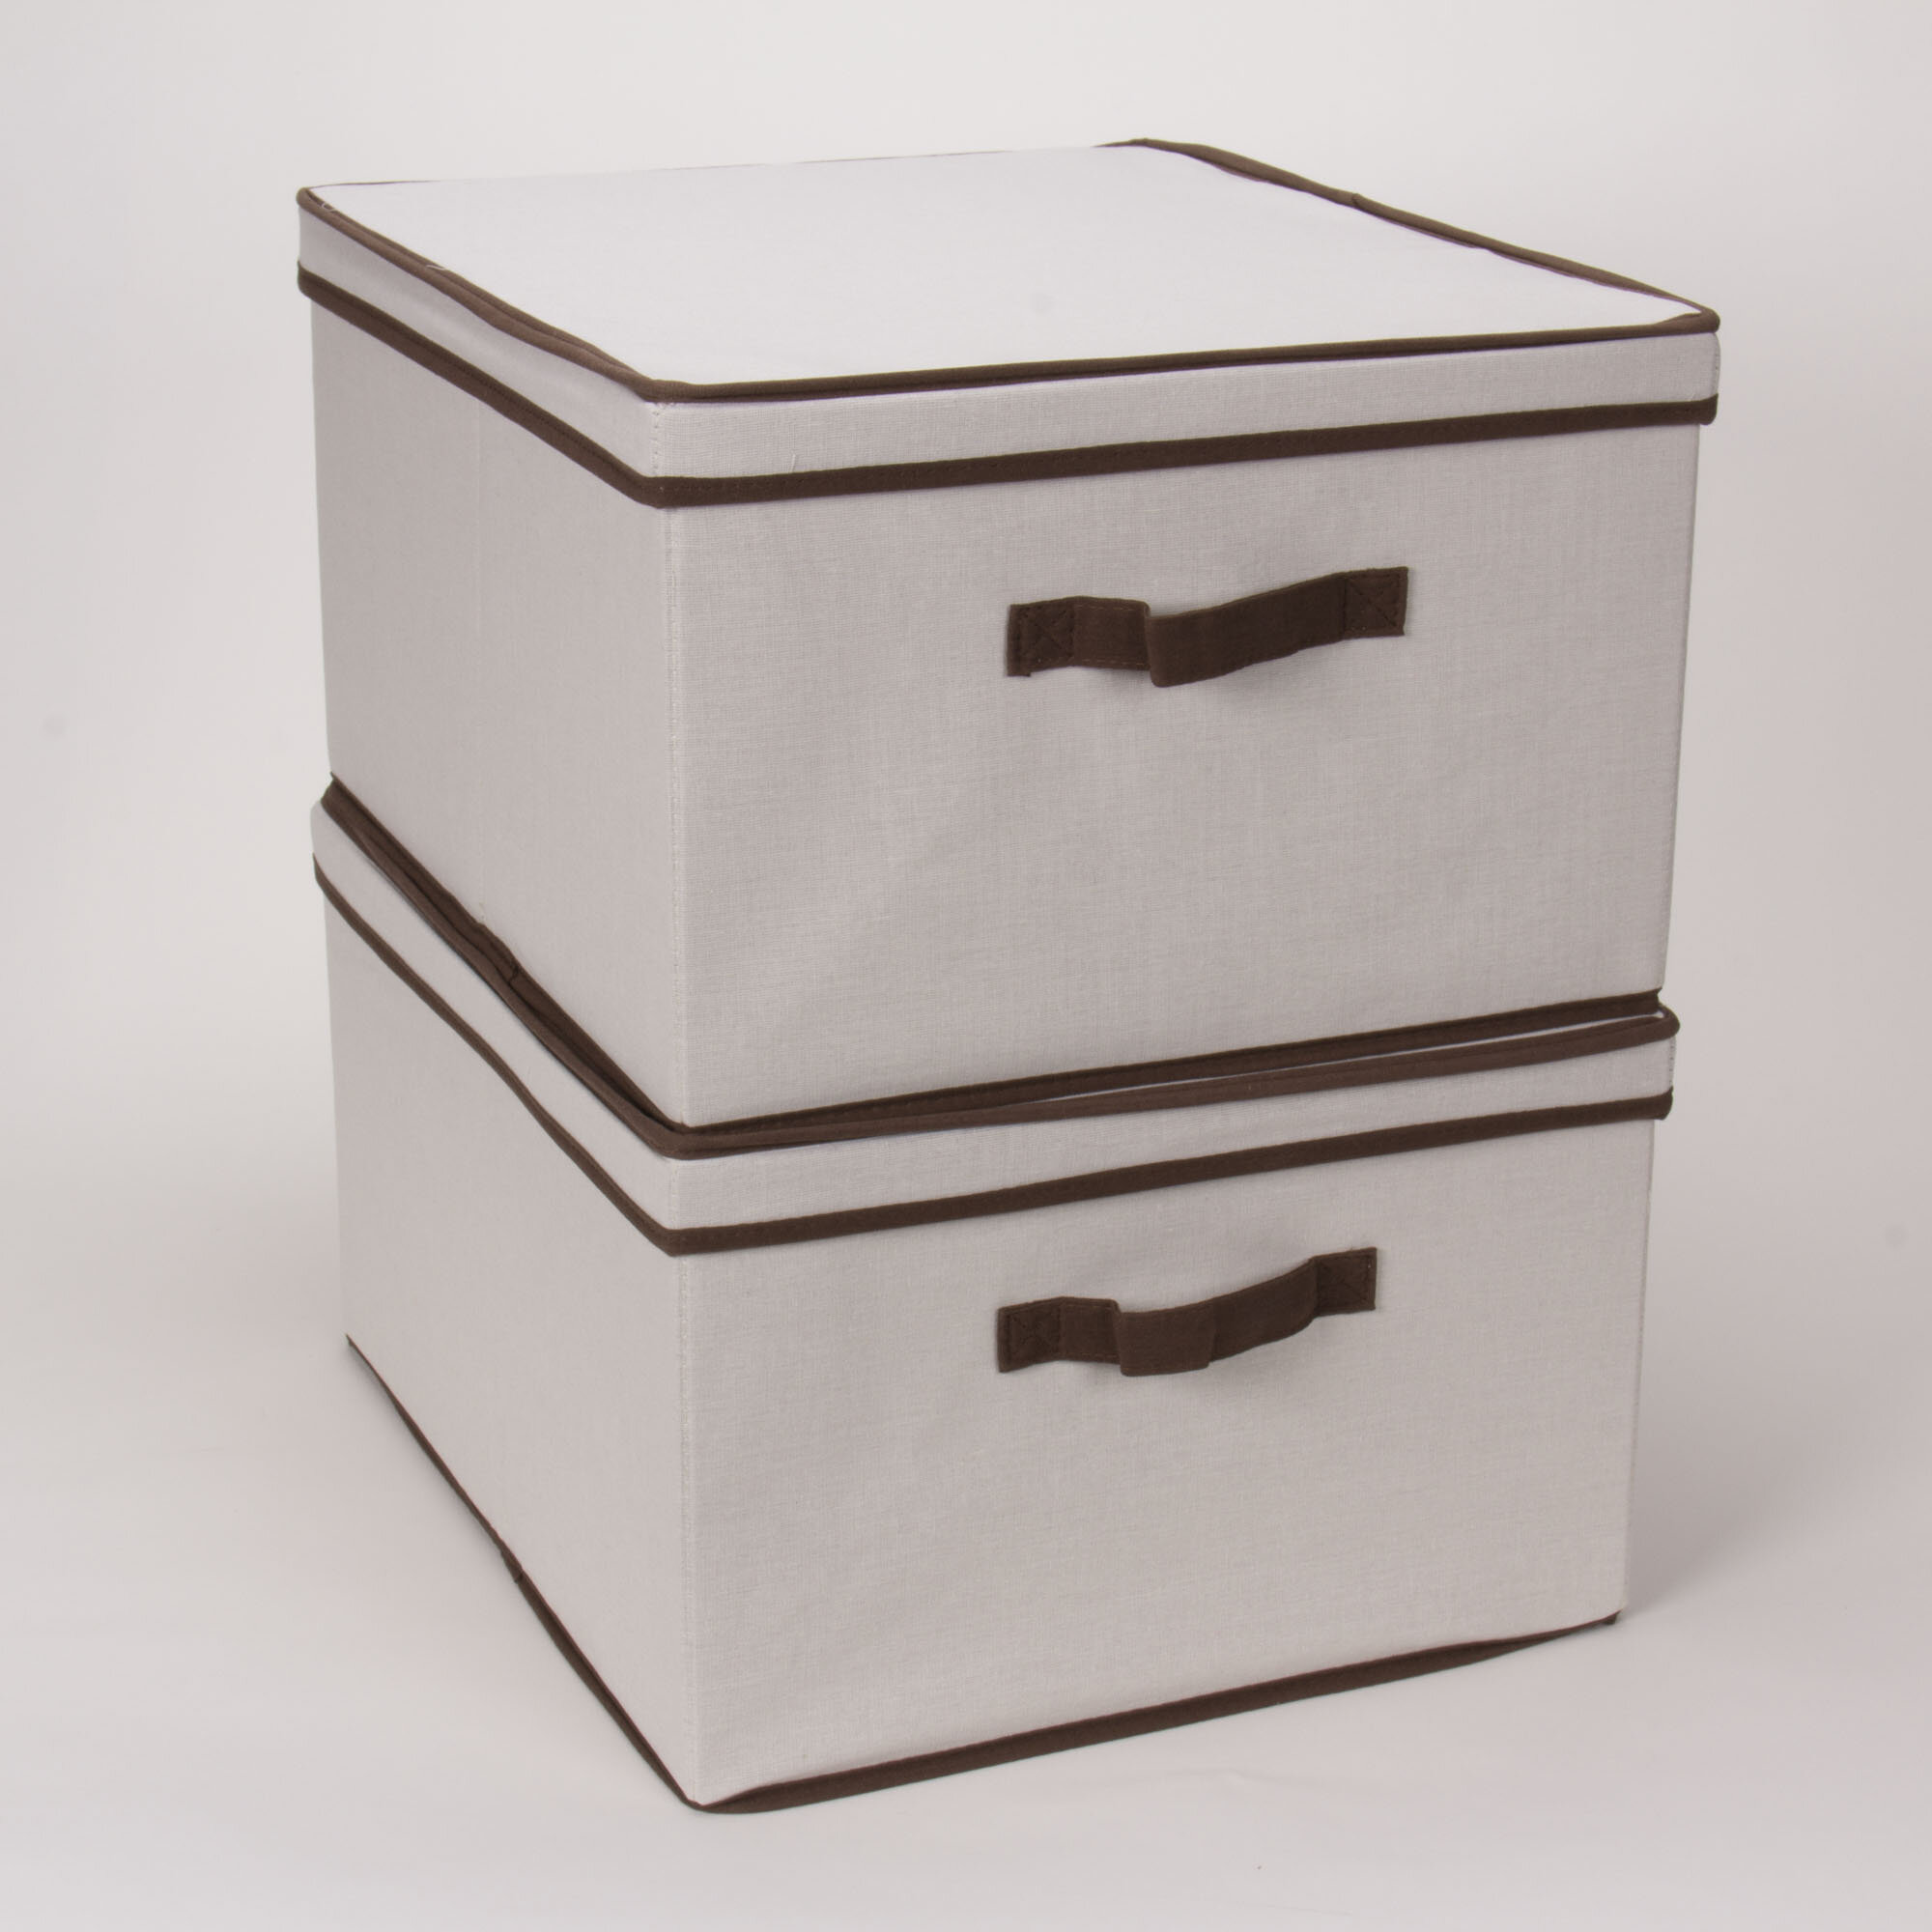 Rebrilliant Jumbo Storage Box Reviews Wayfair